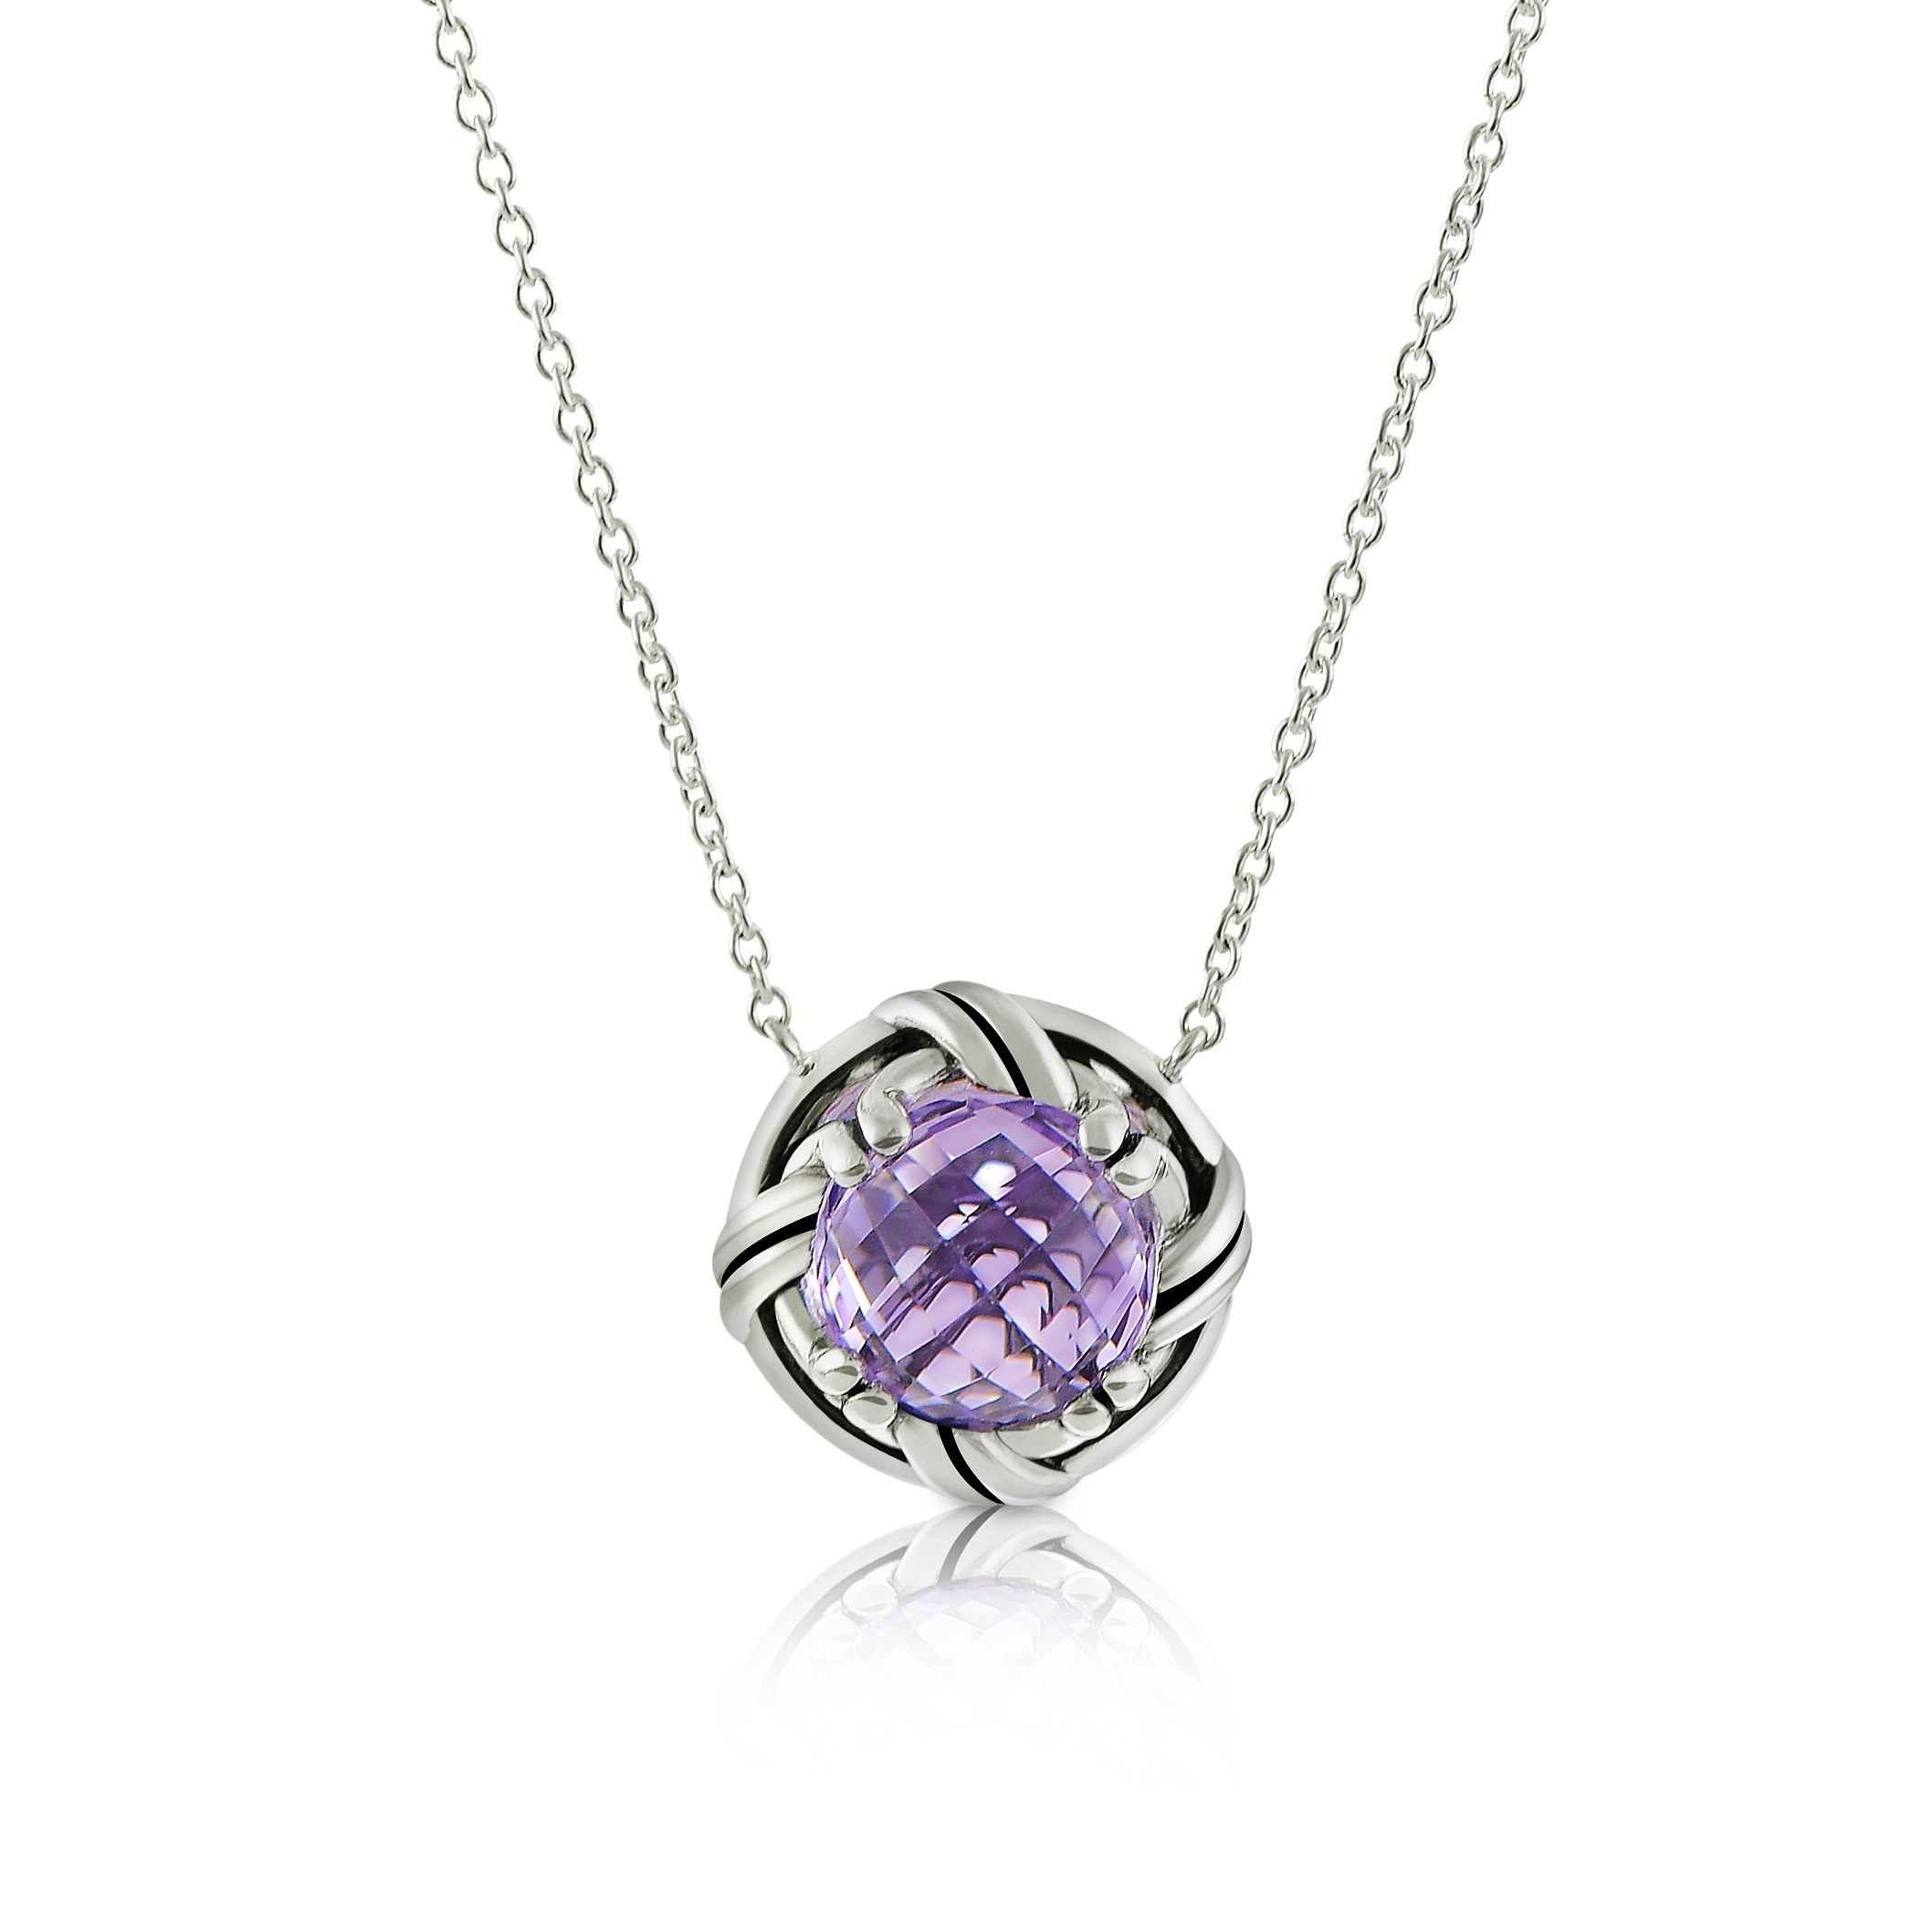 Fantasies Lavender Amethyst Necklace in sterling silver